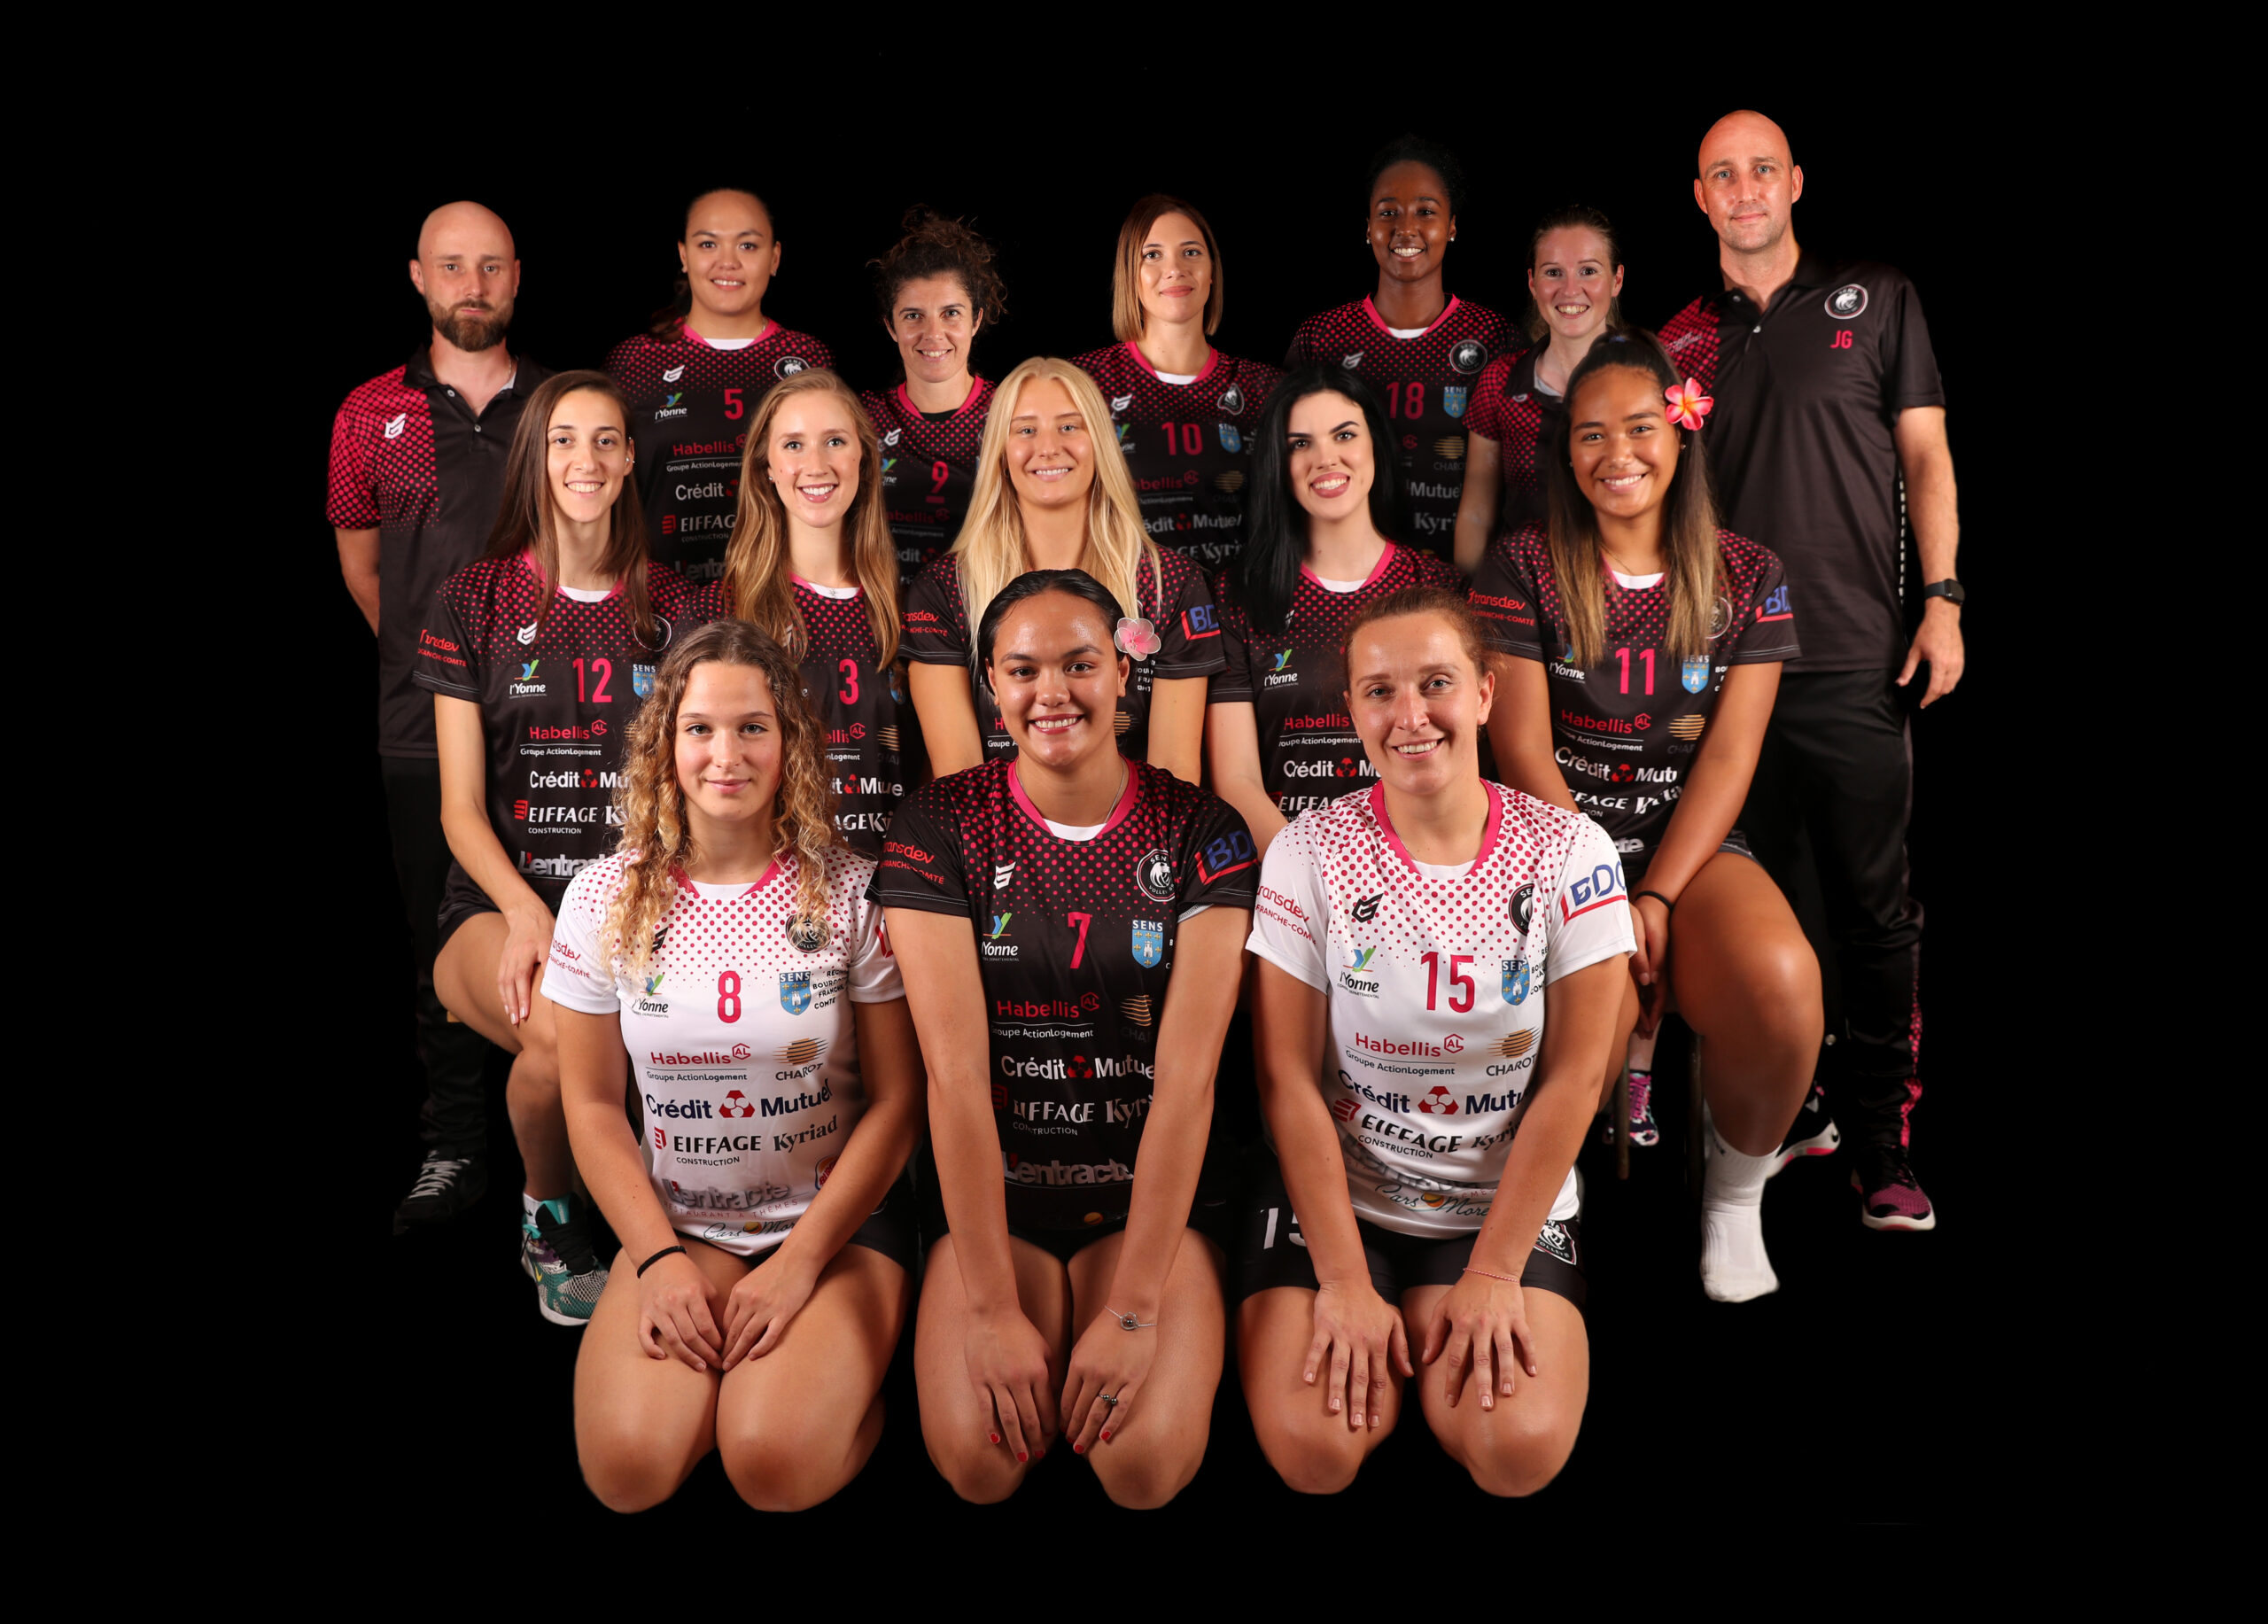 https://sens-volley.com/wp-content/uploads/2021/09/PHOTO-GROUPE-3-scaled.jpg